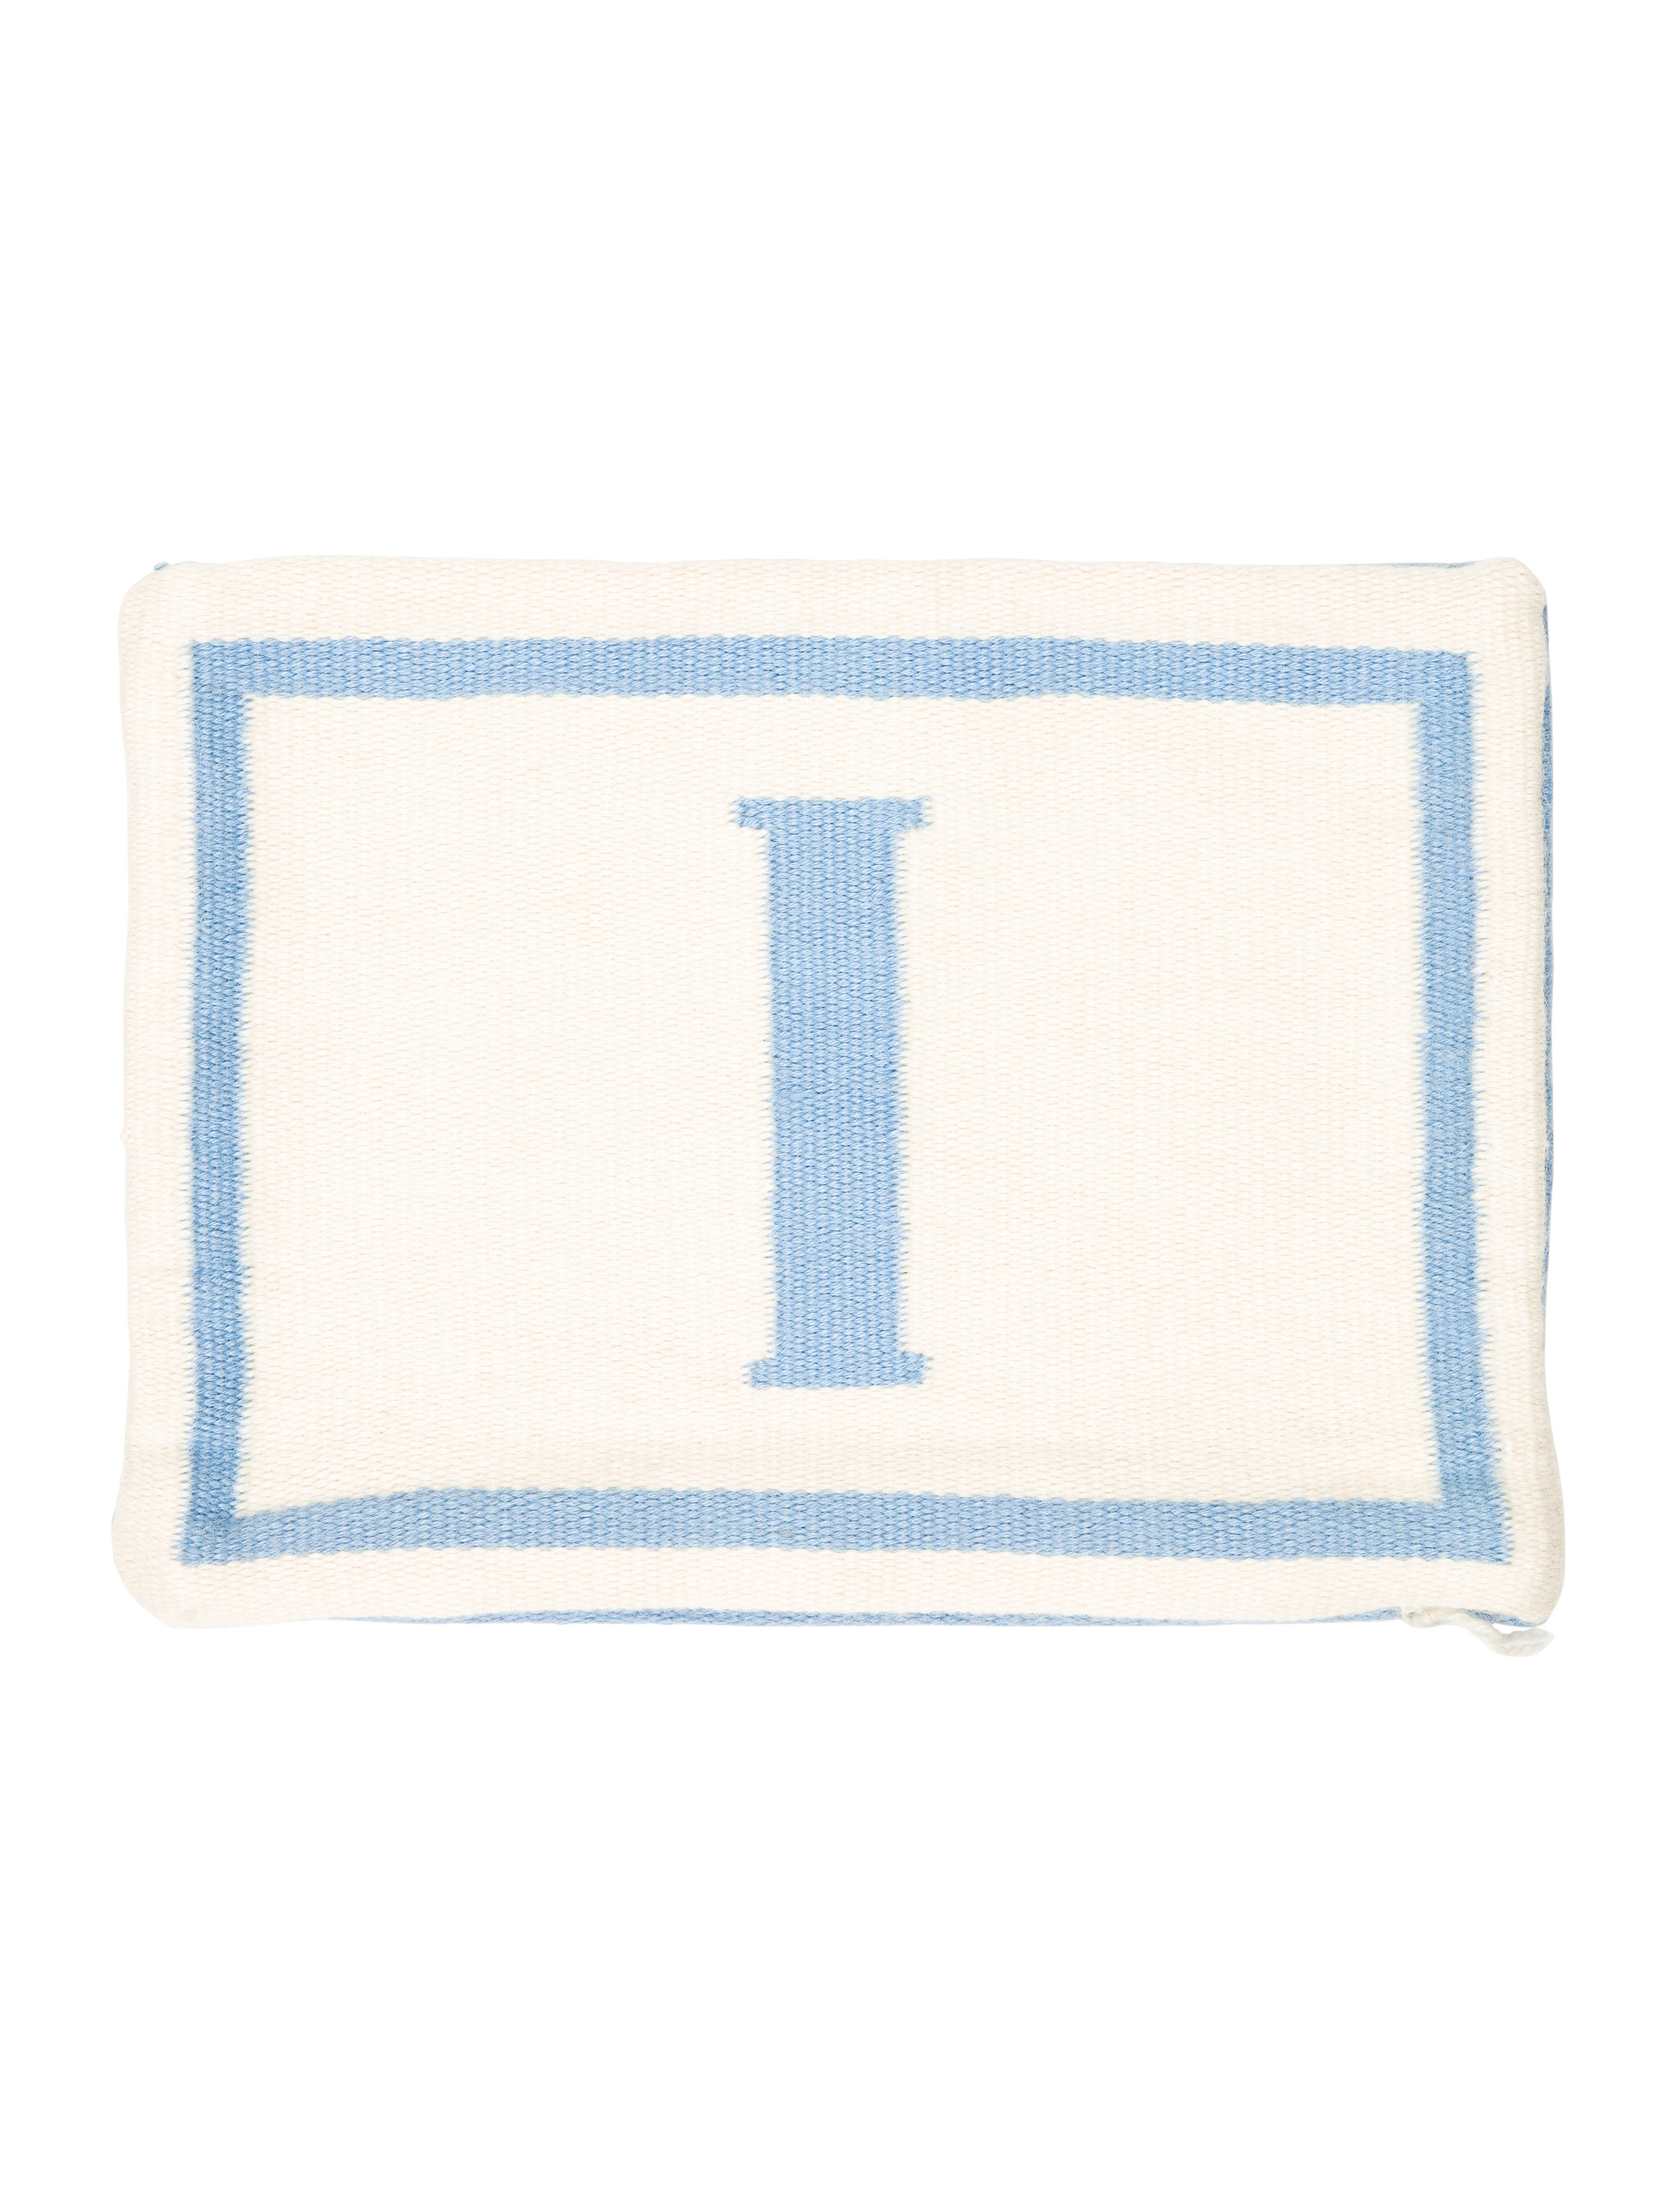 Letter L Throw Pillow : Jonathan Adler Reversible Junior Letter Throw Pillow Case w/ Tags - Bedding And Bath ...